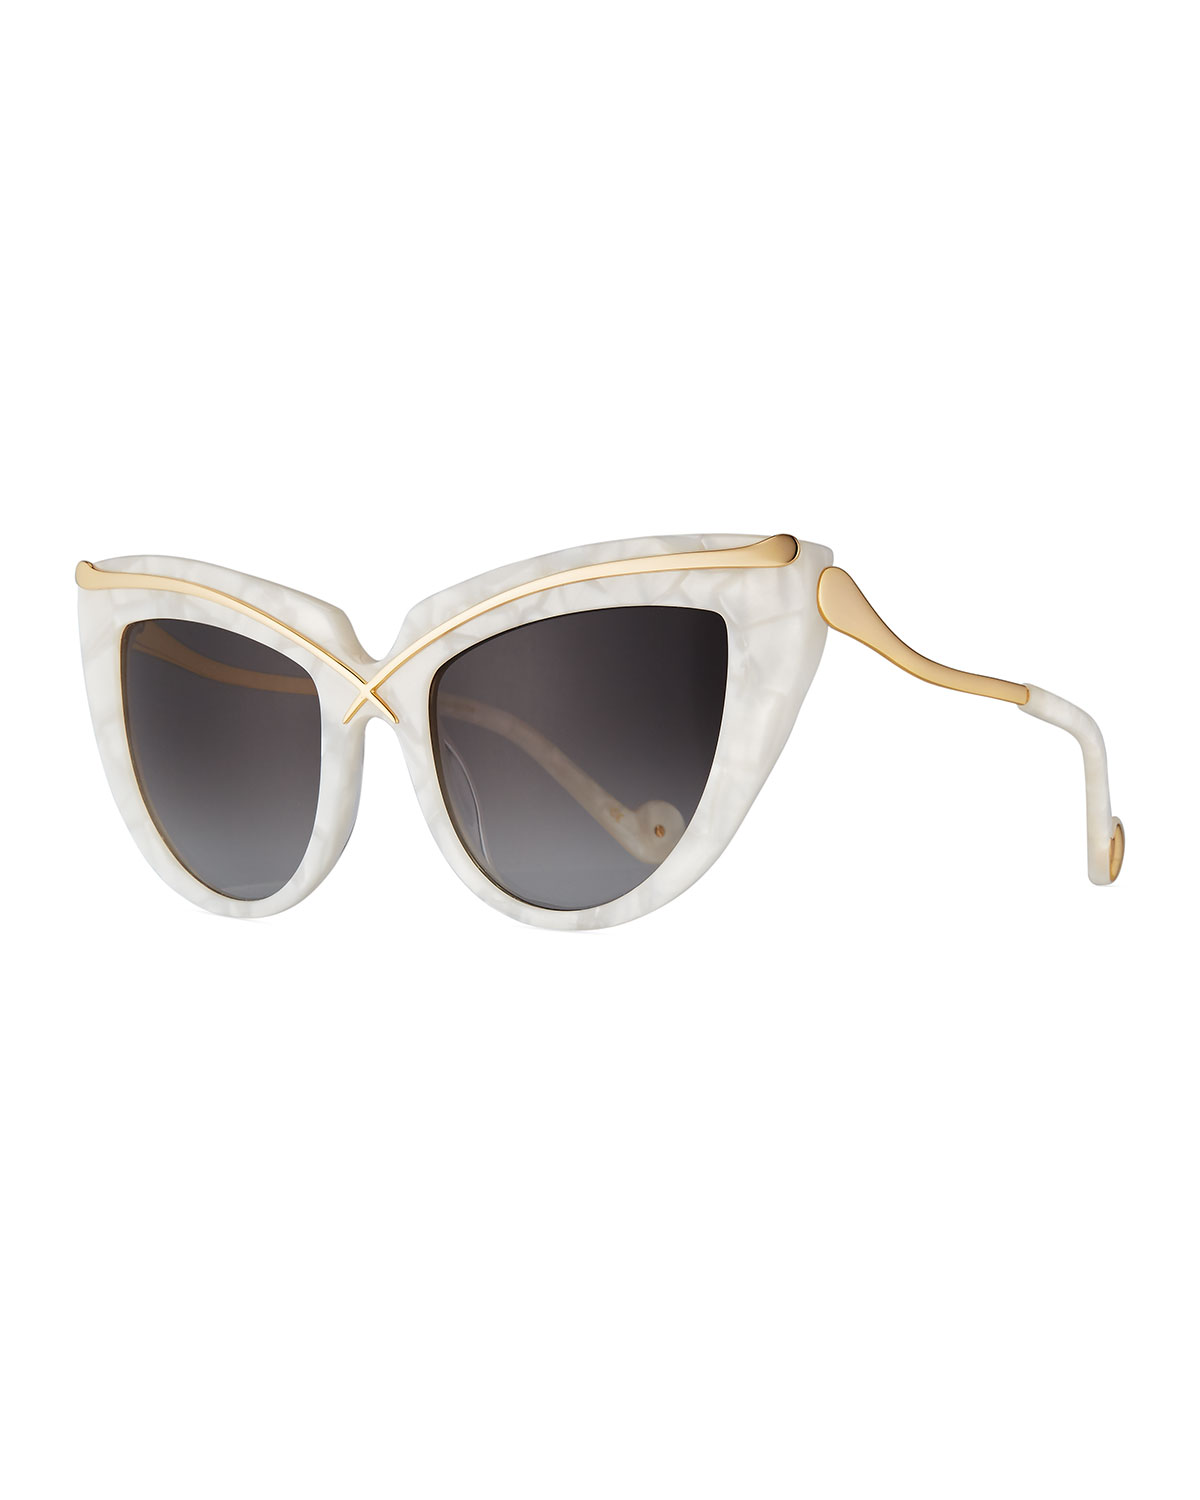 0d8894e907 Buy cat-eye sunglasses   eyewear for women - Best women s cat-eye sunglasses    eyewear shop - Cools.com